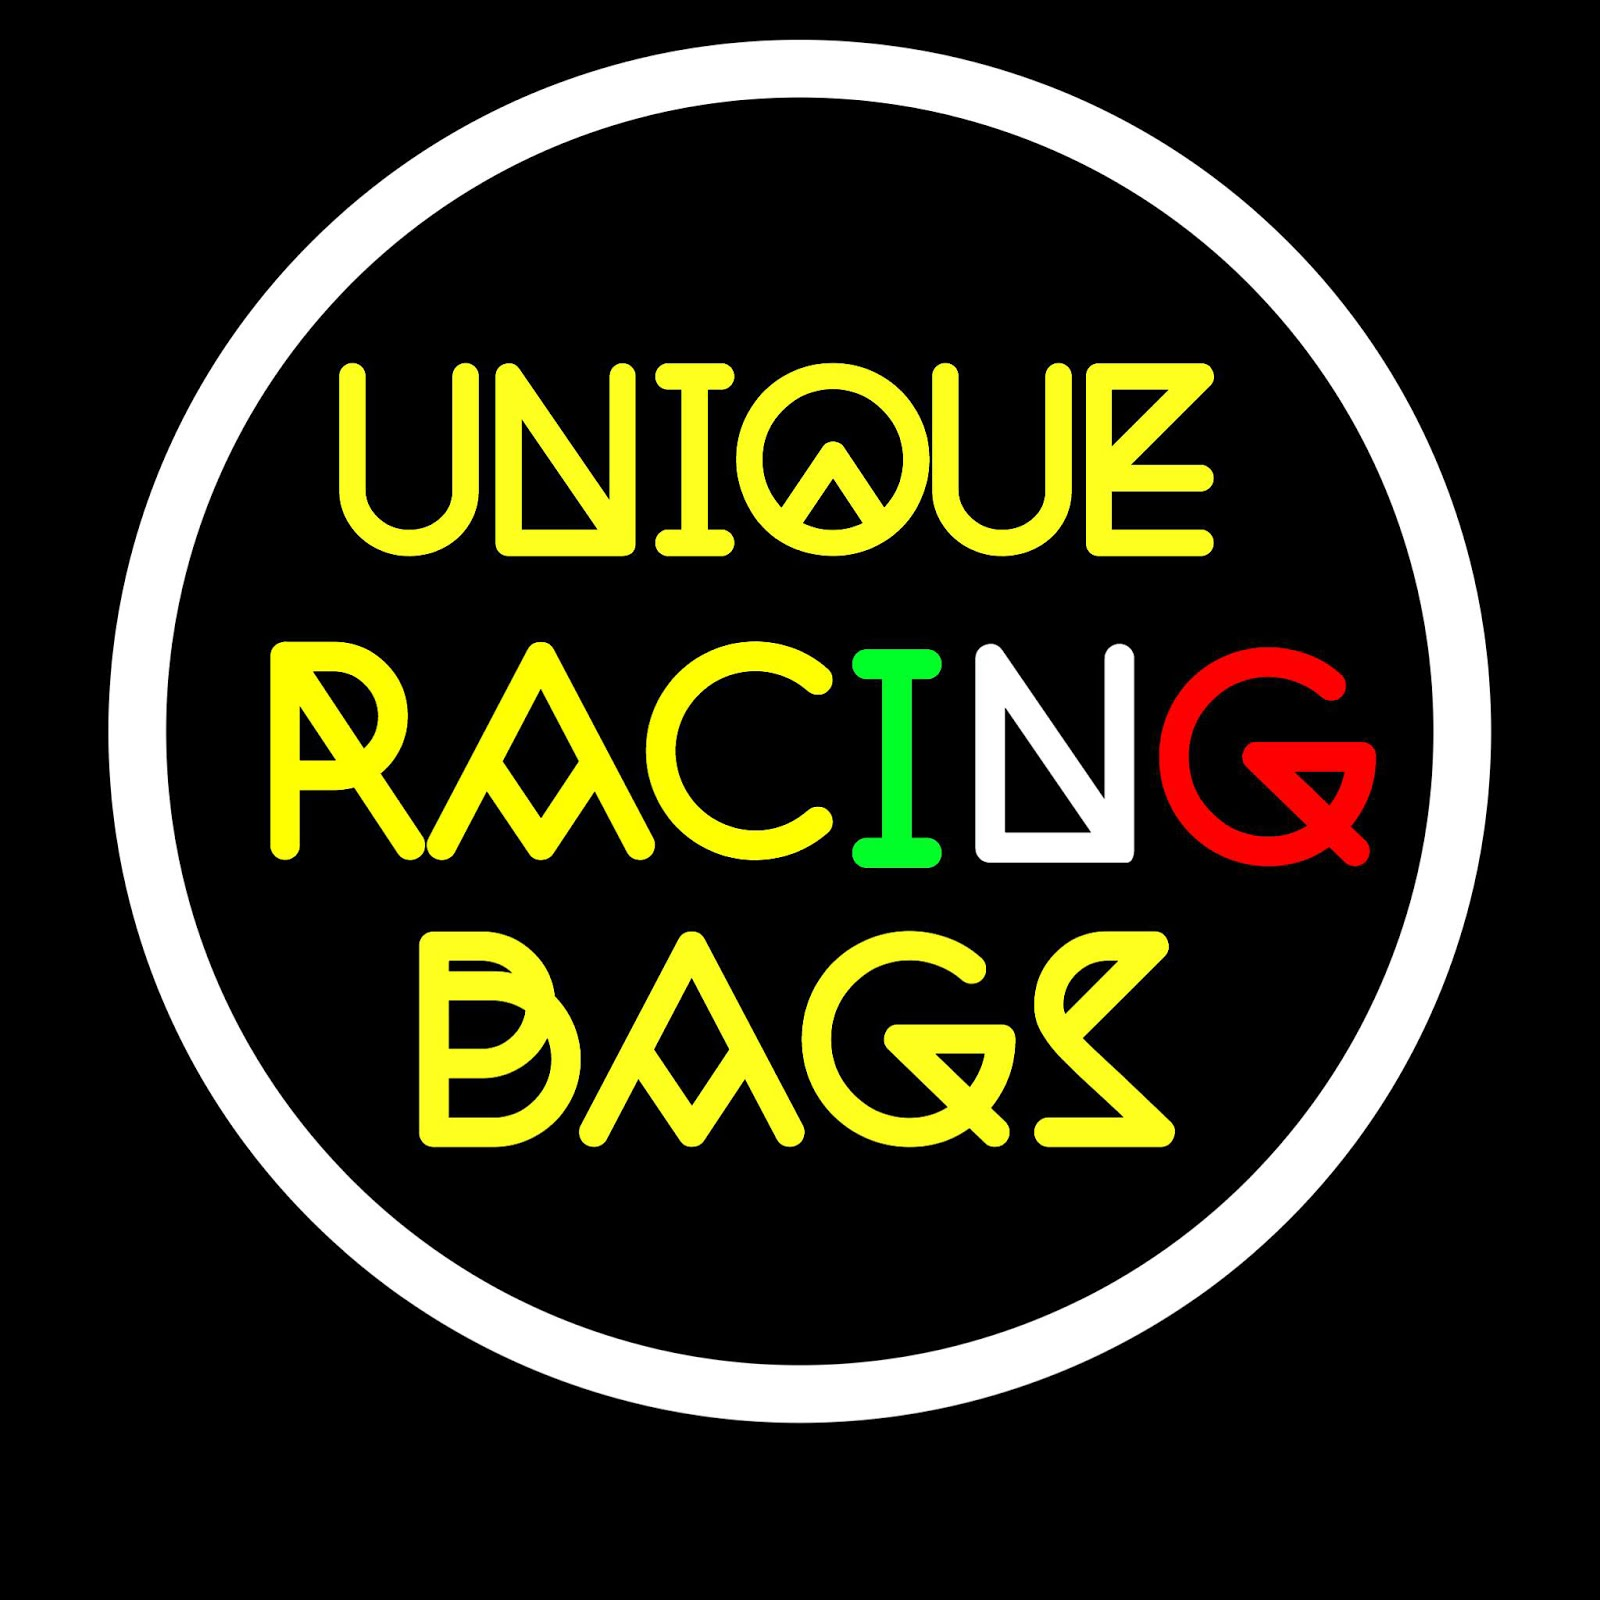 UNIQUE RACING BAGS